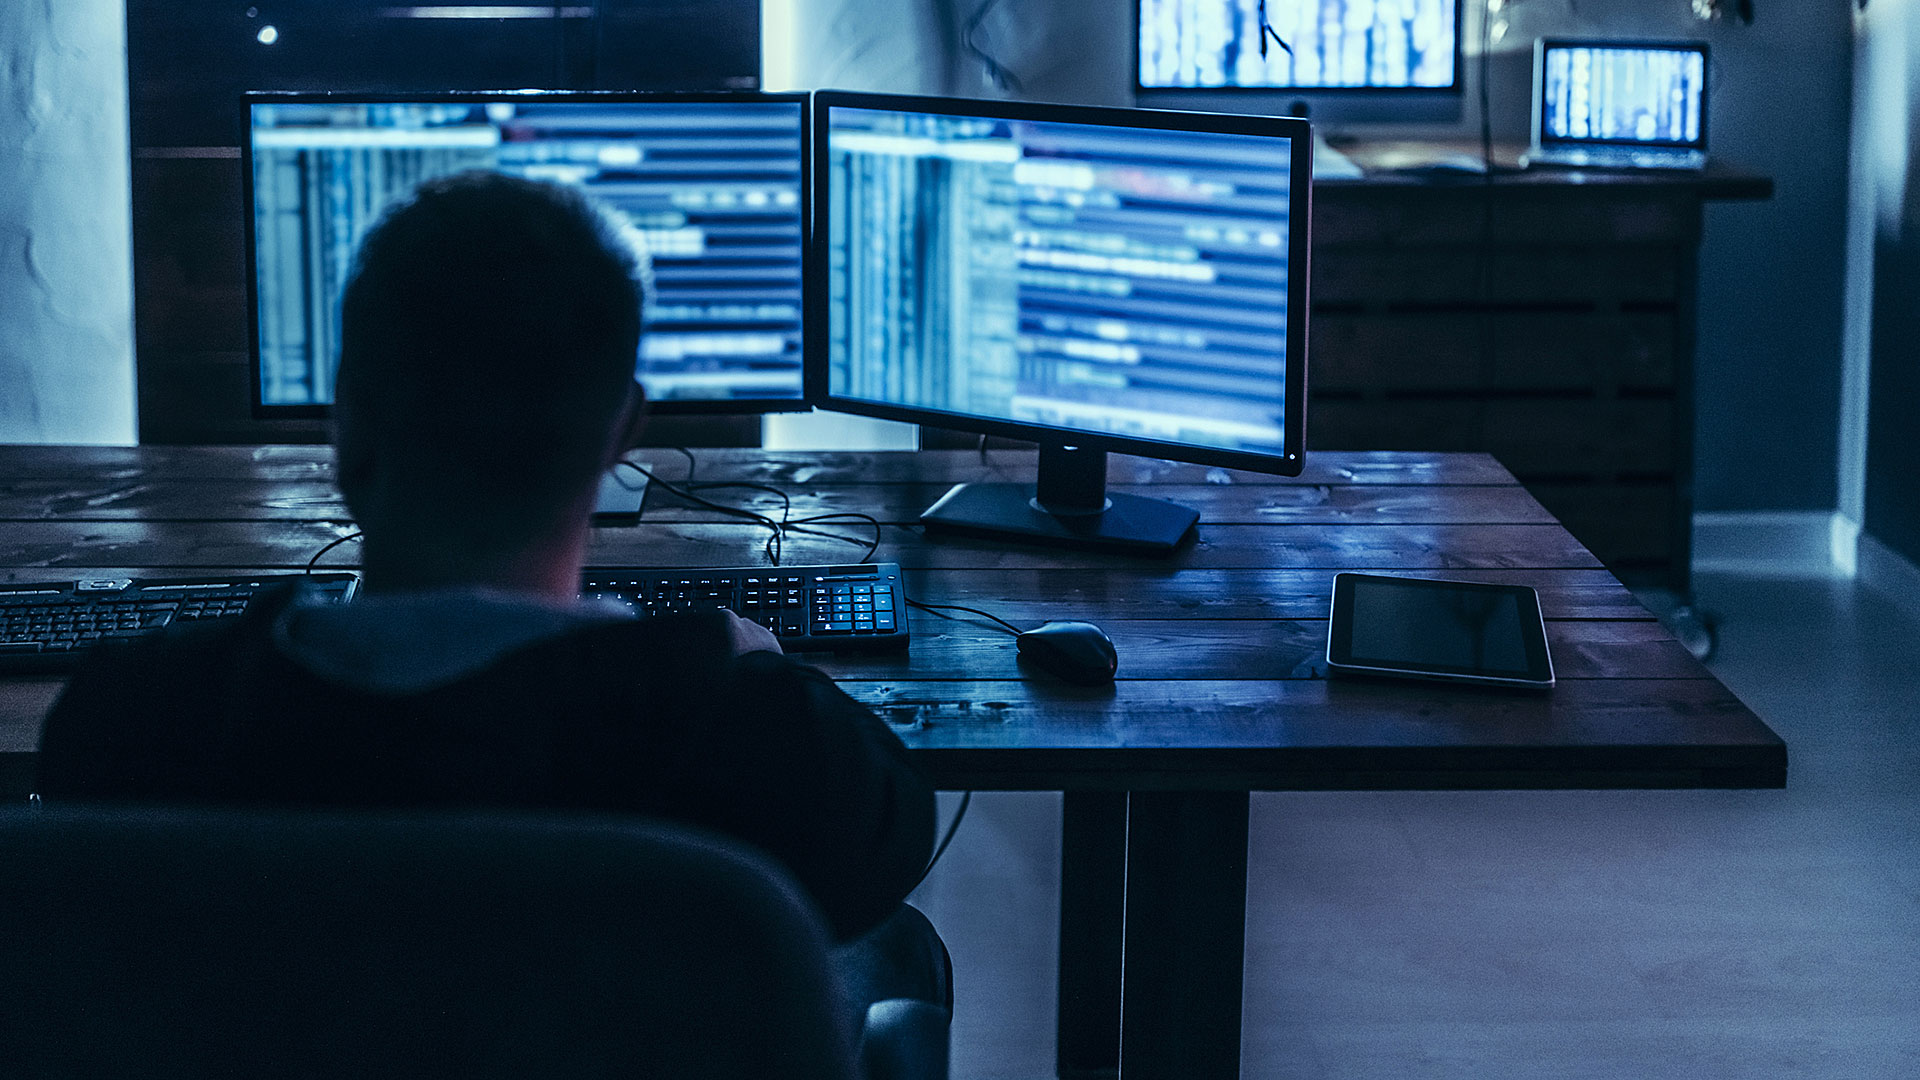 MetroTech Managed IT Services, Clearwater, FL, Preventing Ransomware Attack